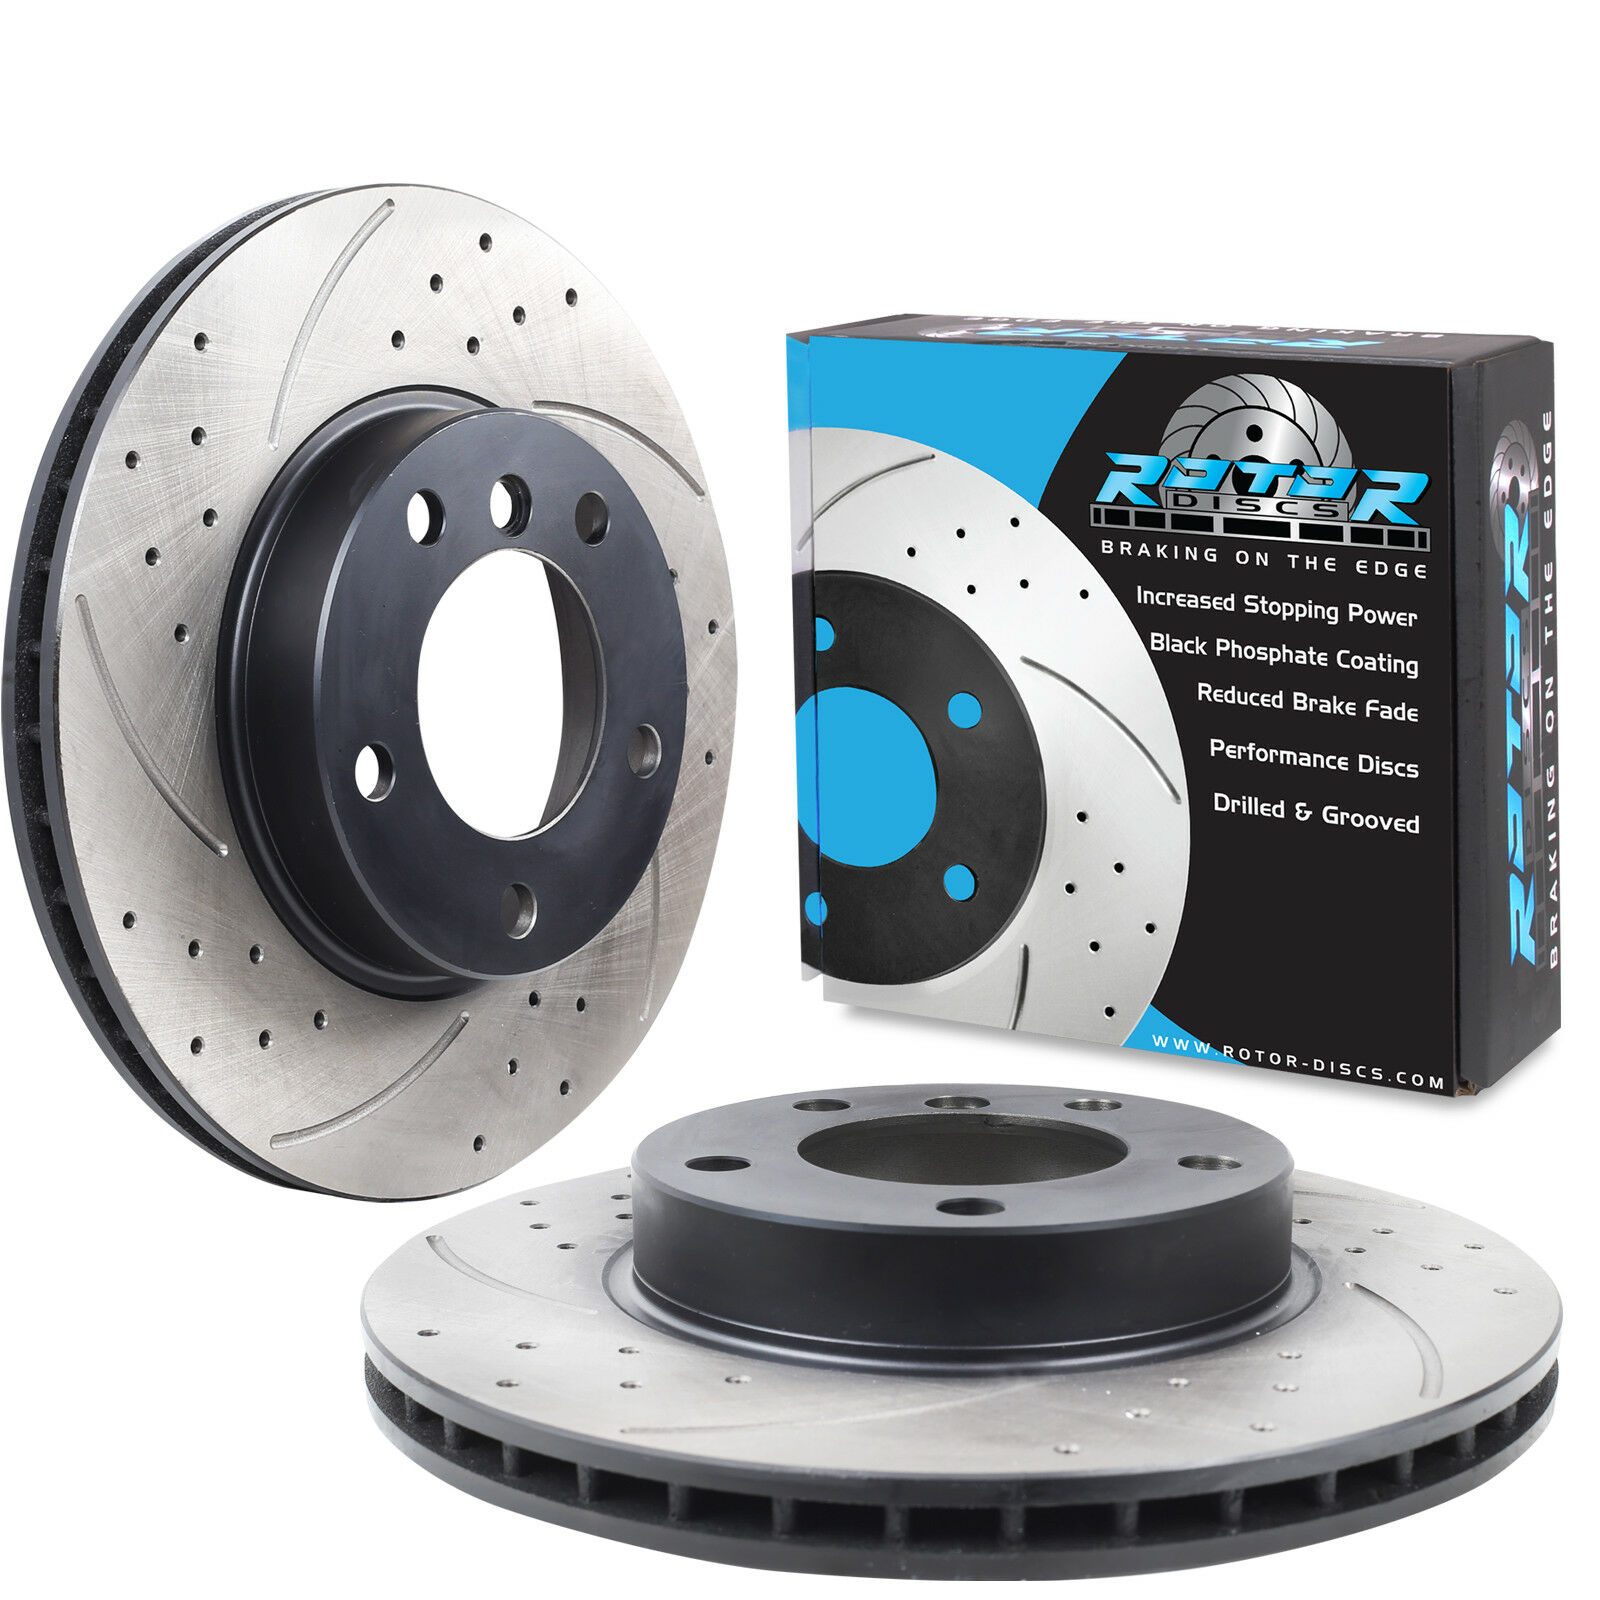 BMW E36 Coupe 318iS 92-99 Front Brake Discs Drilled Grooved Mtec Gold Edition